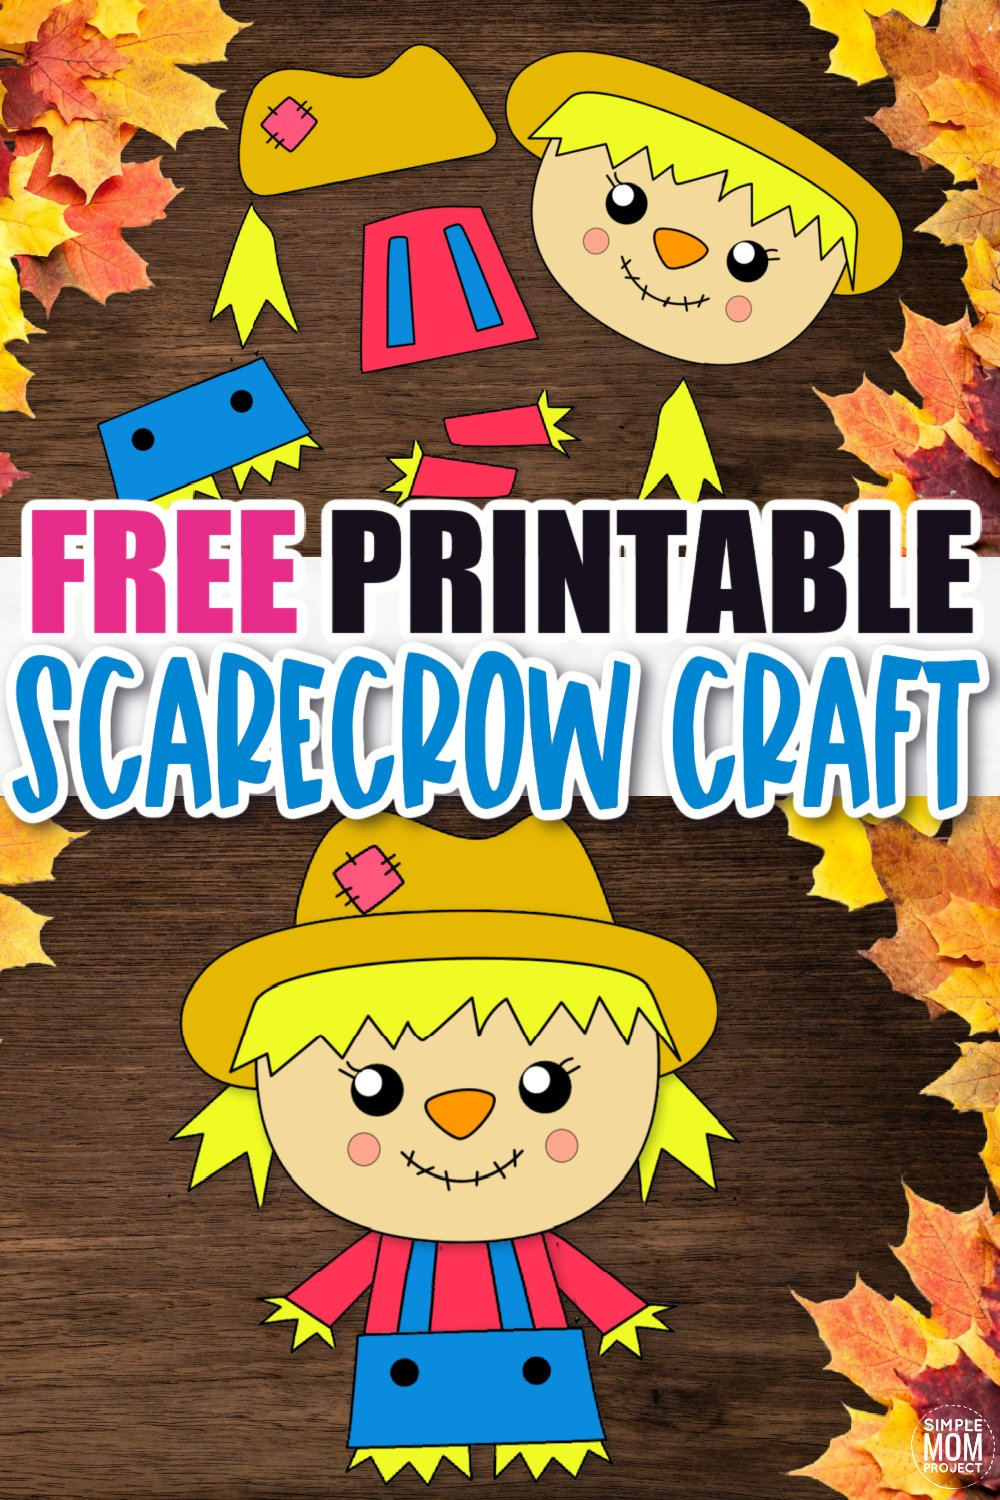 Are you looking for an easy printable fall craft to do with your kids this autumn? Click and get the free printable girl scarecrow template to make this fun girl scarecrow craft. The girl scarecrow can be turned into a popsicle scarecrow or scarecrow paper bag puppet or a fun fall craft decoration. Either way, kids of all ages, preschoolers, toddlers and kindergartners will love making their very own scarecrow craft! #girlscarecrow #scarecrowcrafts #Fall #FallCrafts #SimpleMomProject